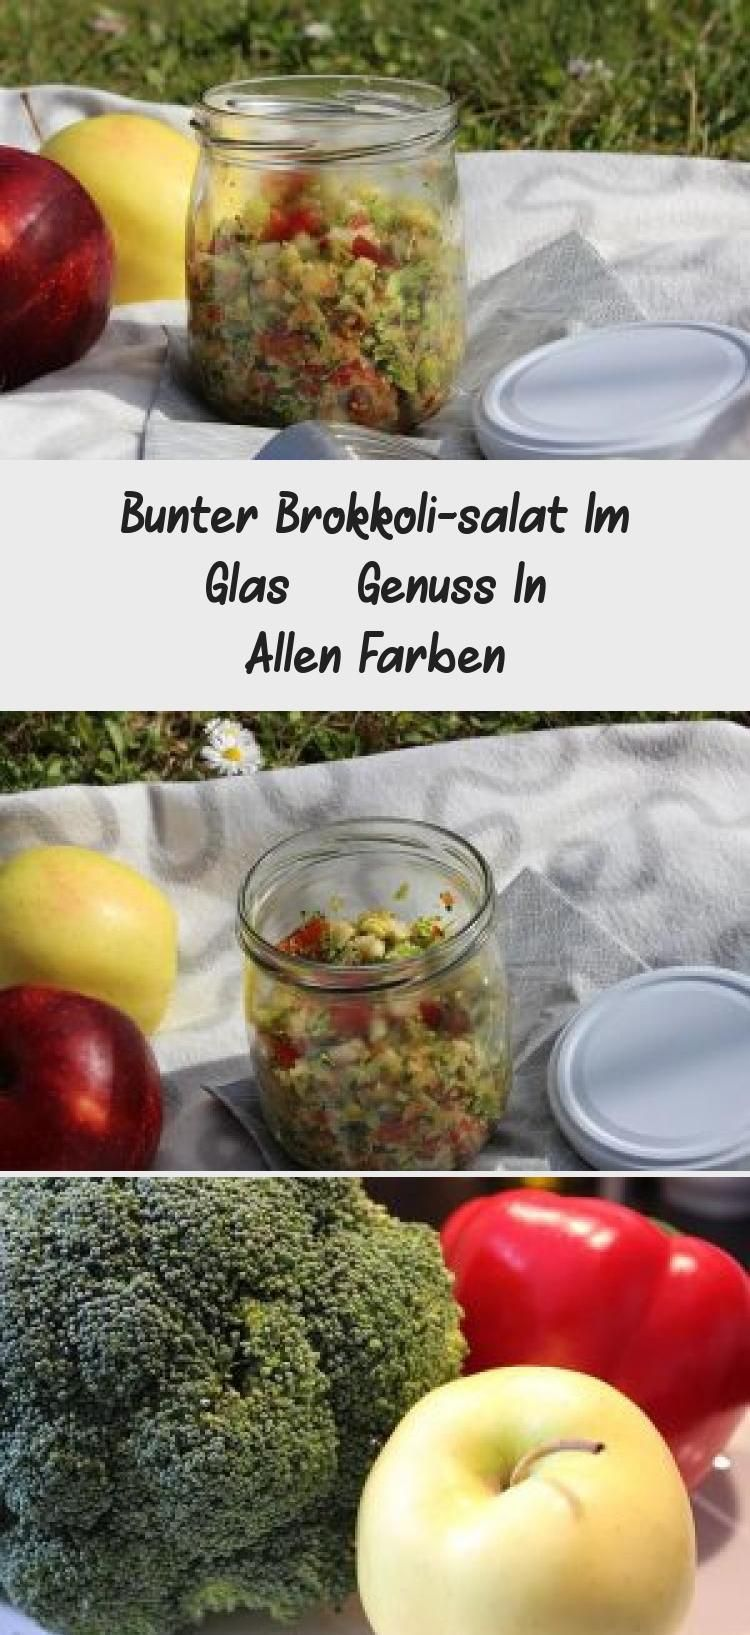 Bunter Brokkoli Salat Im Glas Genuss In Allen Farben Healthy